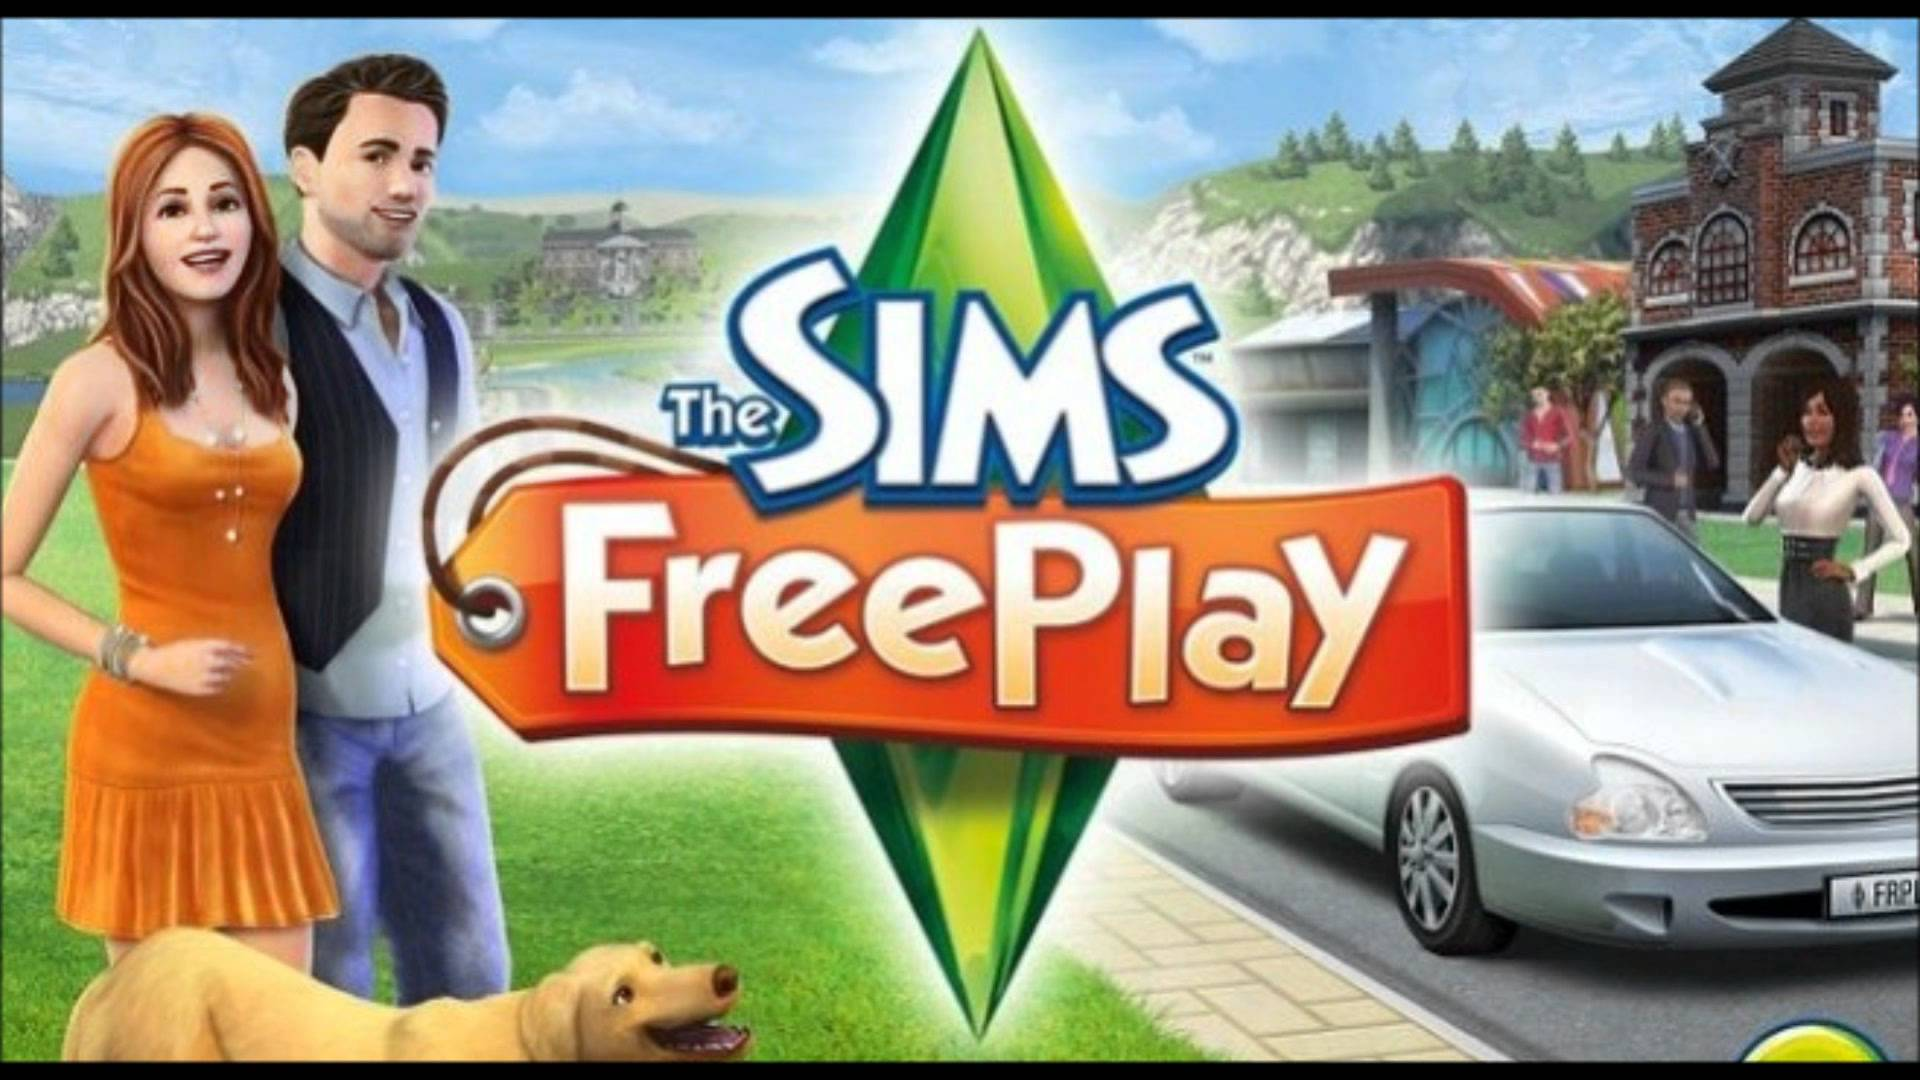 [INFO] SIMSFREEPLAY.APPCHEATER.COM THE SIMS FREEPLAY | UNLIMITED Lifestyle Points and Simoleons